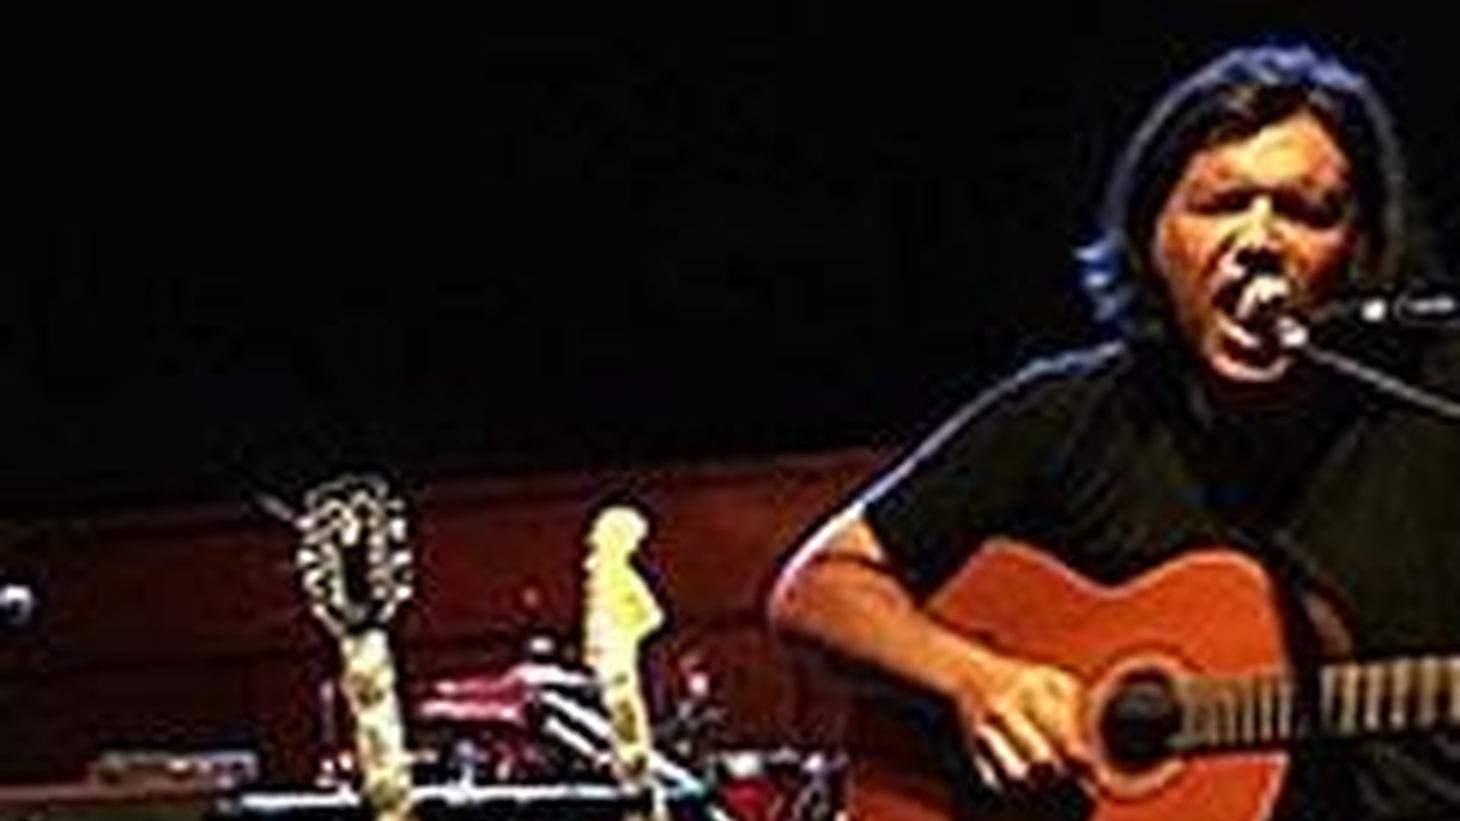 Folky singer-songwriter, Richard Buckner, performs solo on Morning Becomes Eclectic at 11:15am.